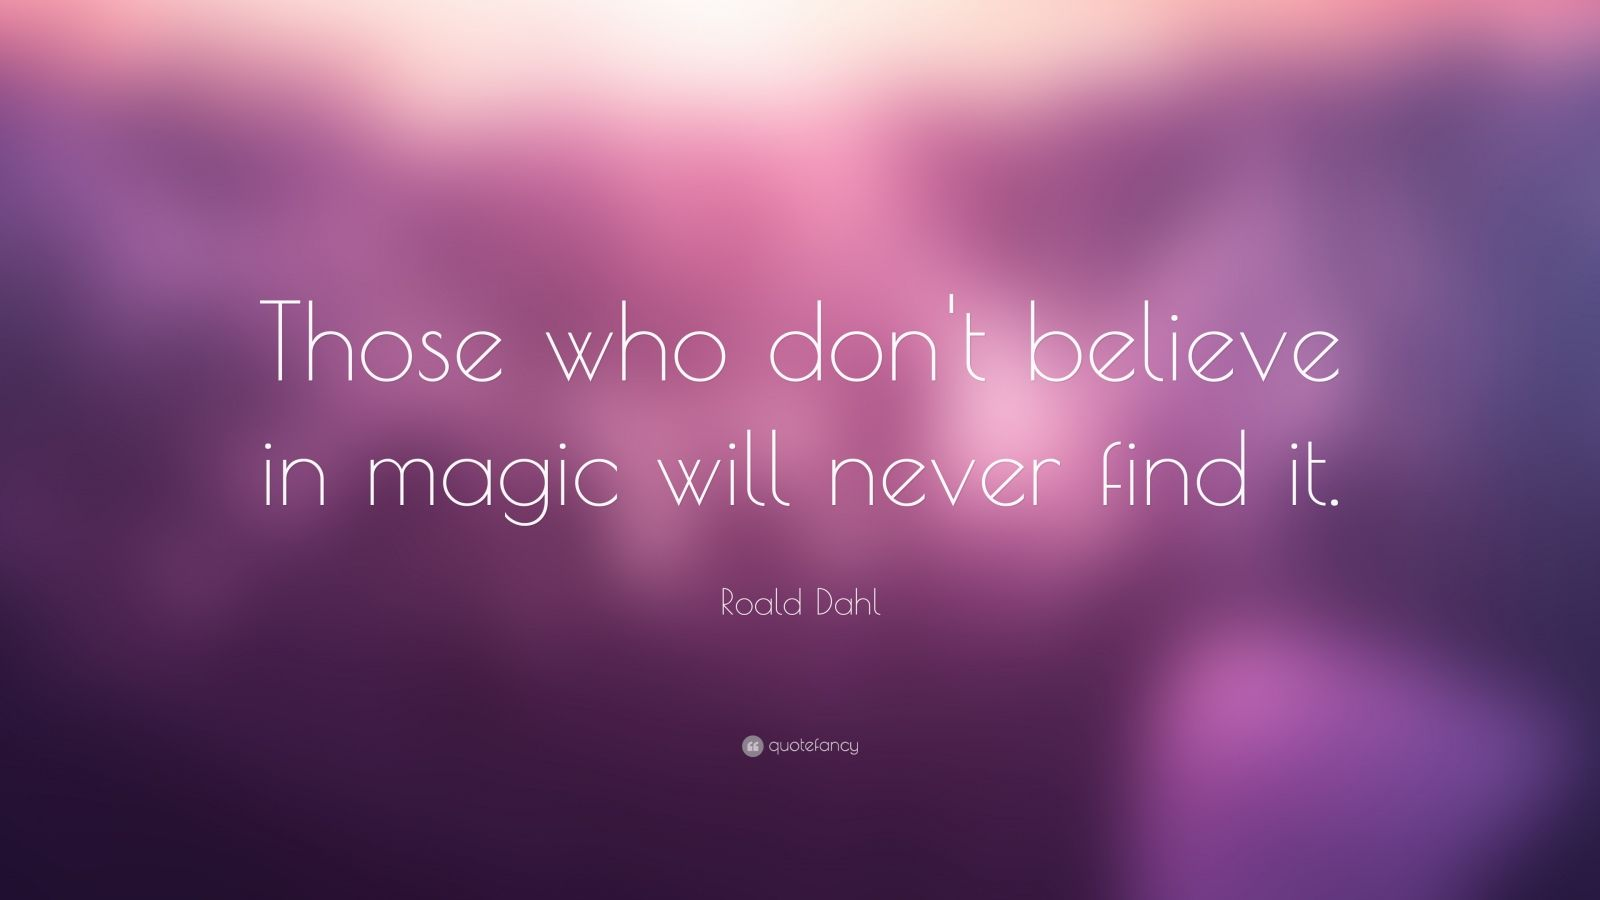 """Those who don't believe in magic will never find it"" Roald Dahl [1600;900]"